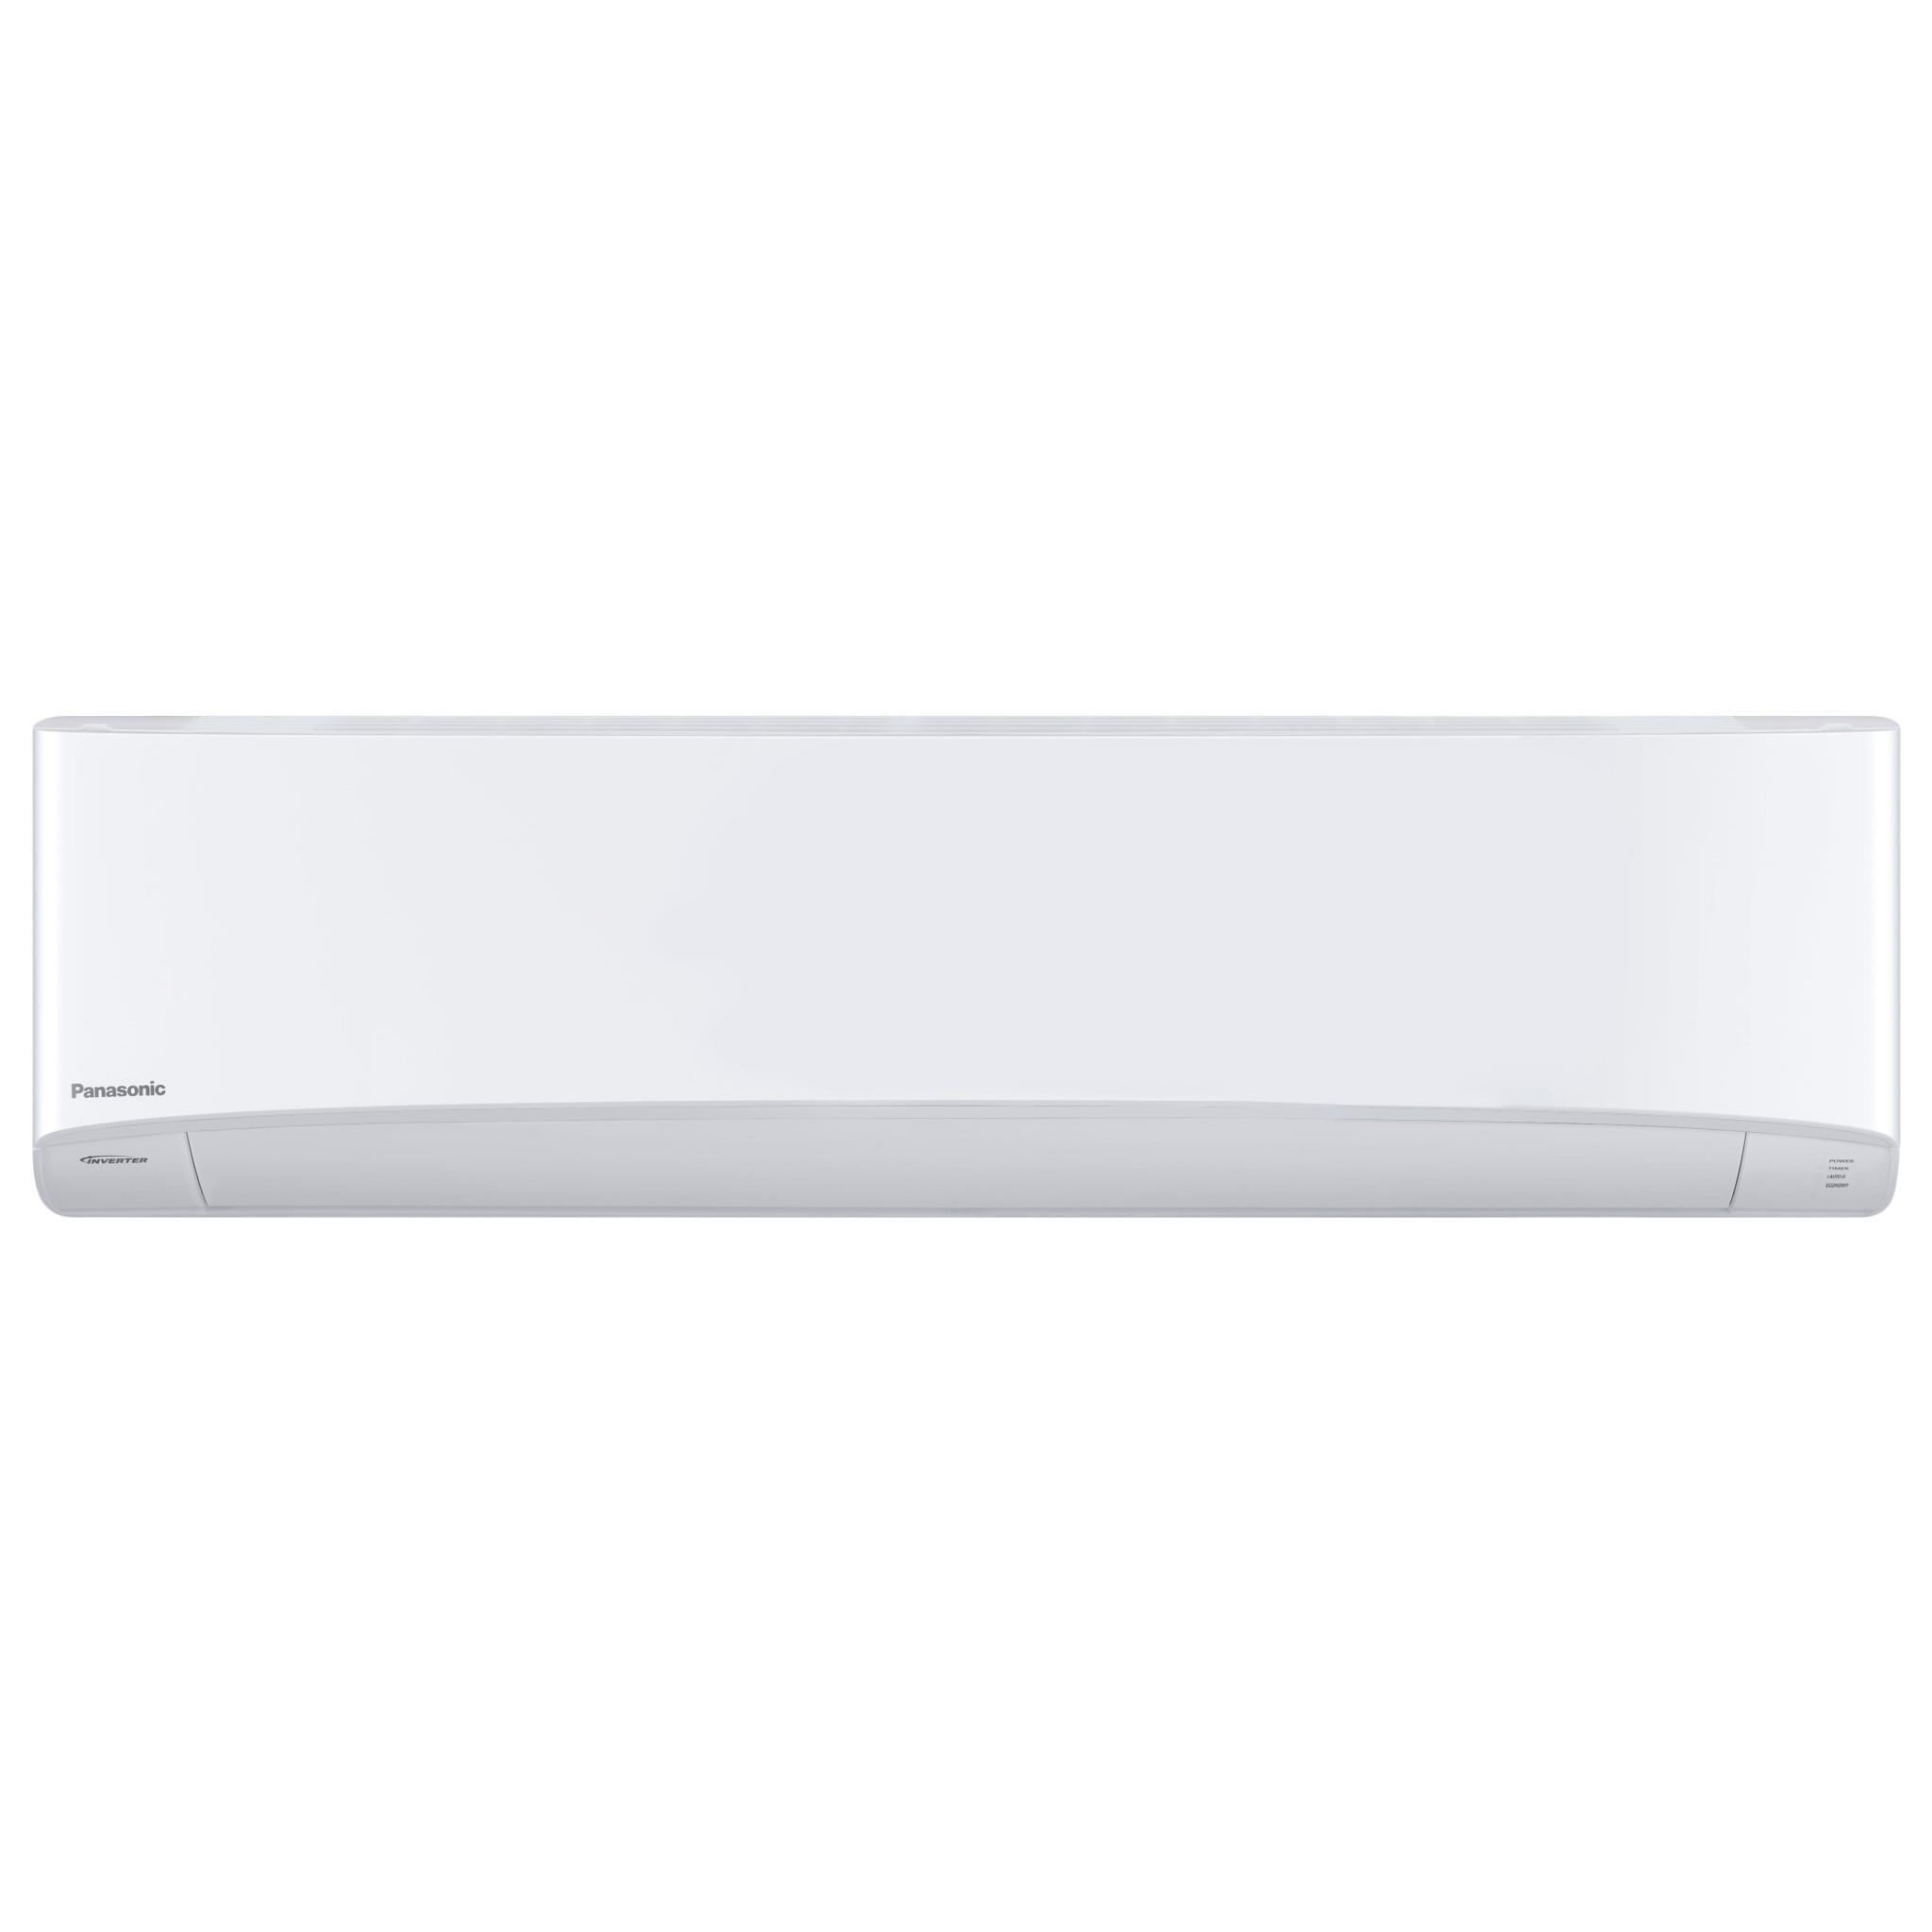 Panasonic 5.0kW Aero Cooling Only Air Conditioner